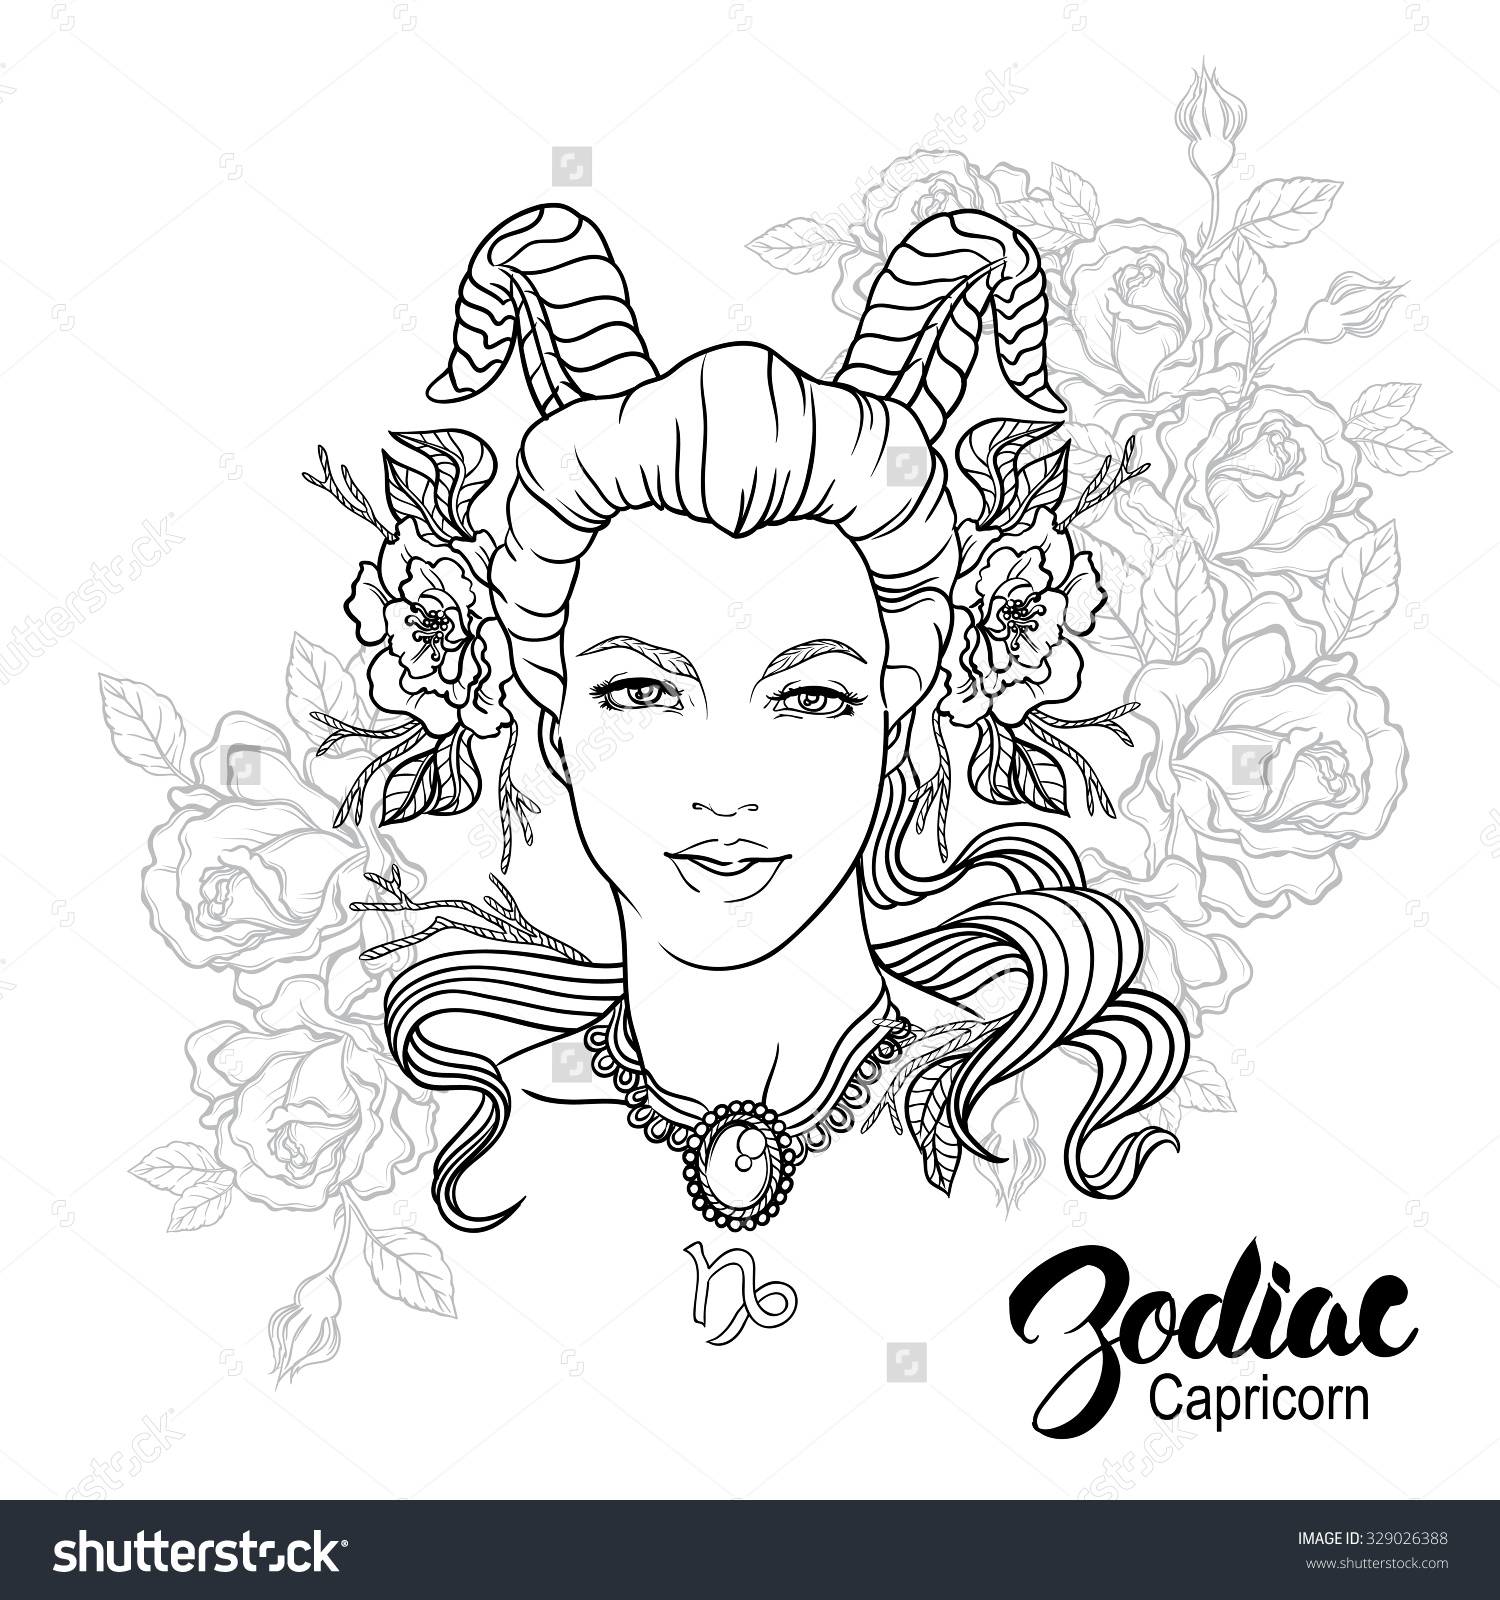 zodiac coloring pages - capricorn astrology coloring download capricorn